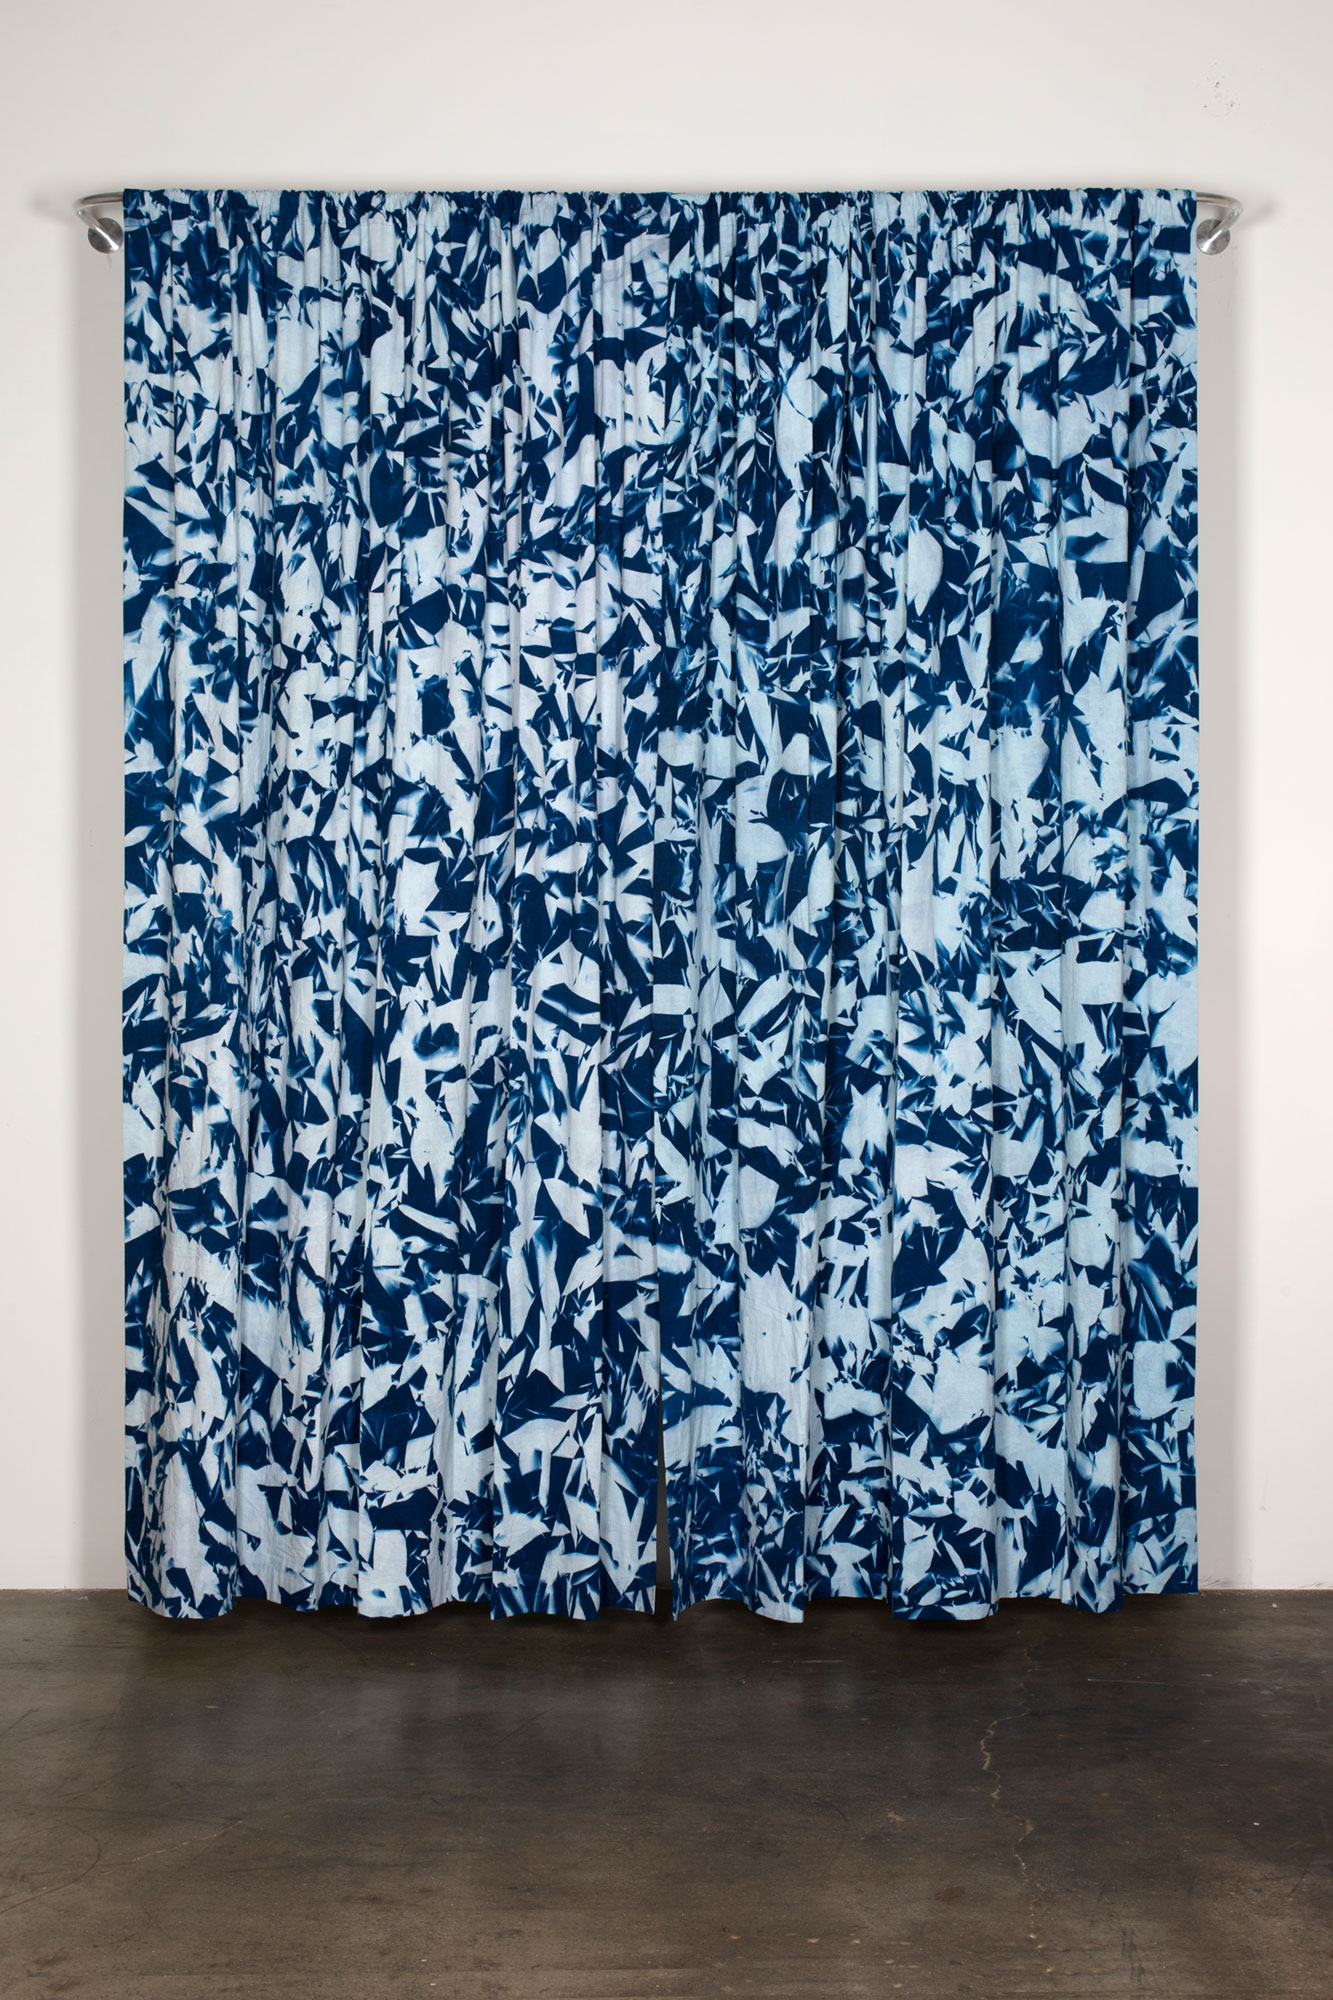 Untitled   2016  Cyanotype on linen  Dimensions variable   Cyanotypes, 2009–